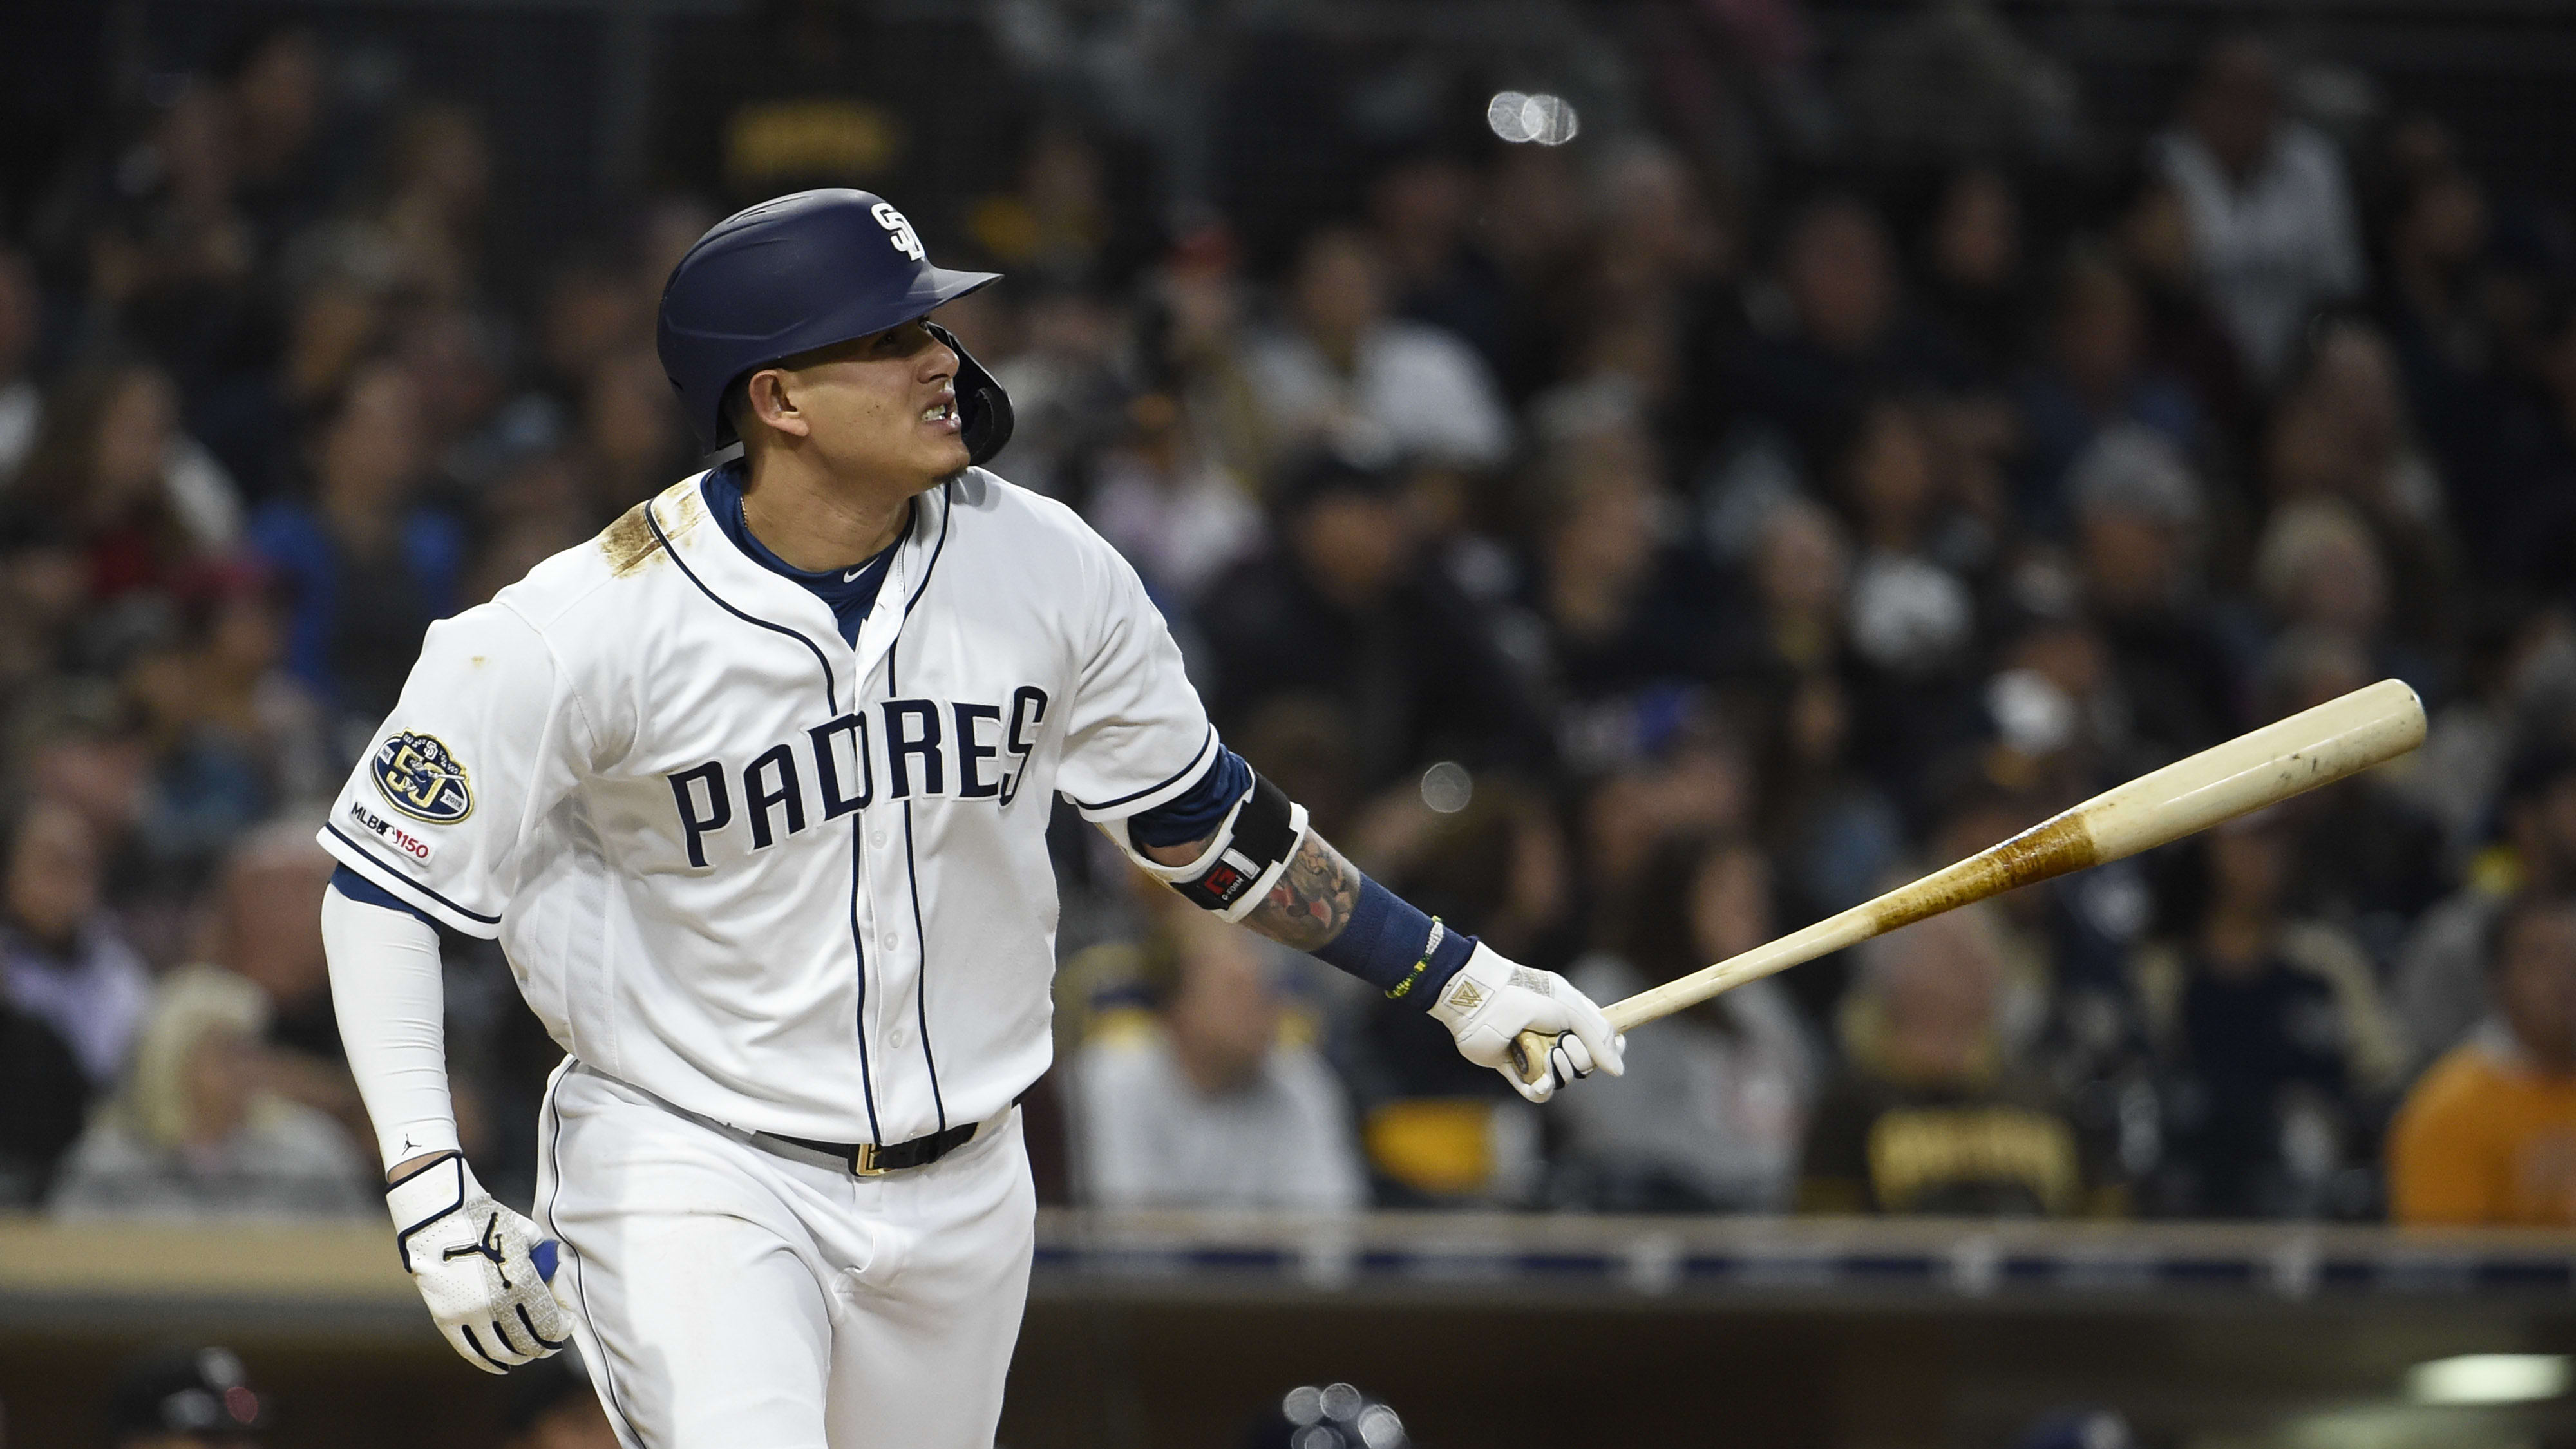 SAN DIEGO, CA - JUNE 17: Manny Machado #13 of the San Diego Padres hits a solo home run during the third inning of a baseball game against the Milwaukee Brewers at Petco Park June 17, 2019 in San Diego, California.  (Photo by Denis Poroy/Getty Images)